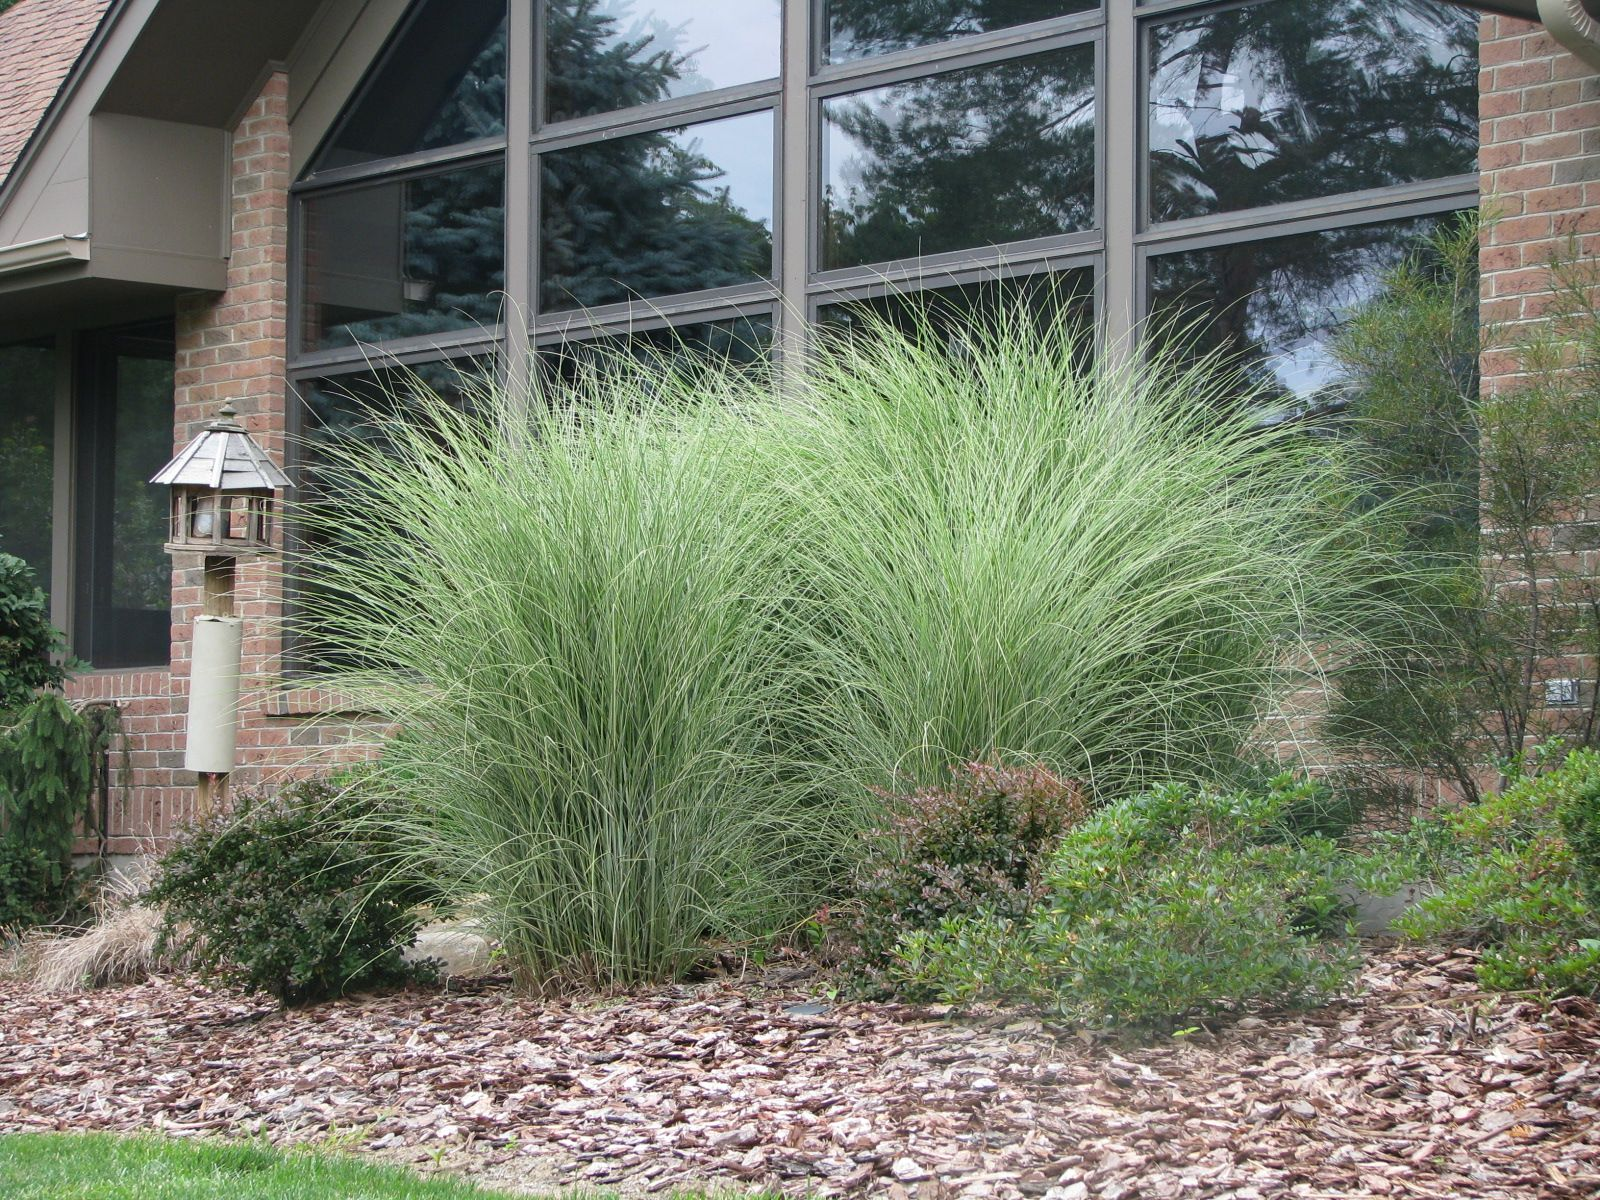 Grass random ornamental grass photos the alternative for Grass garden ideas